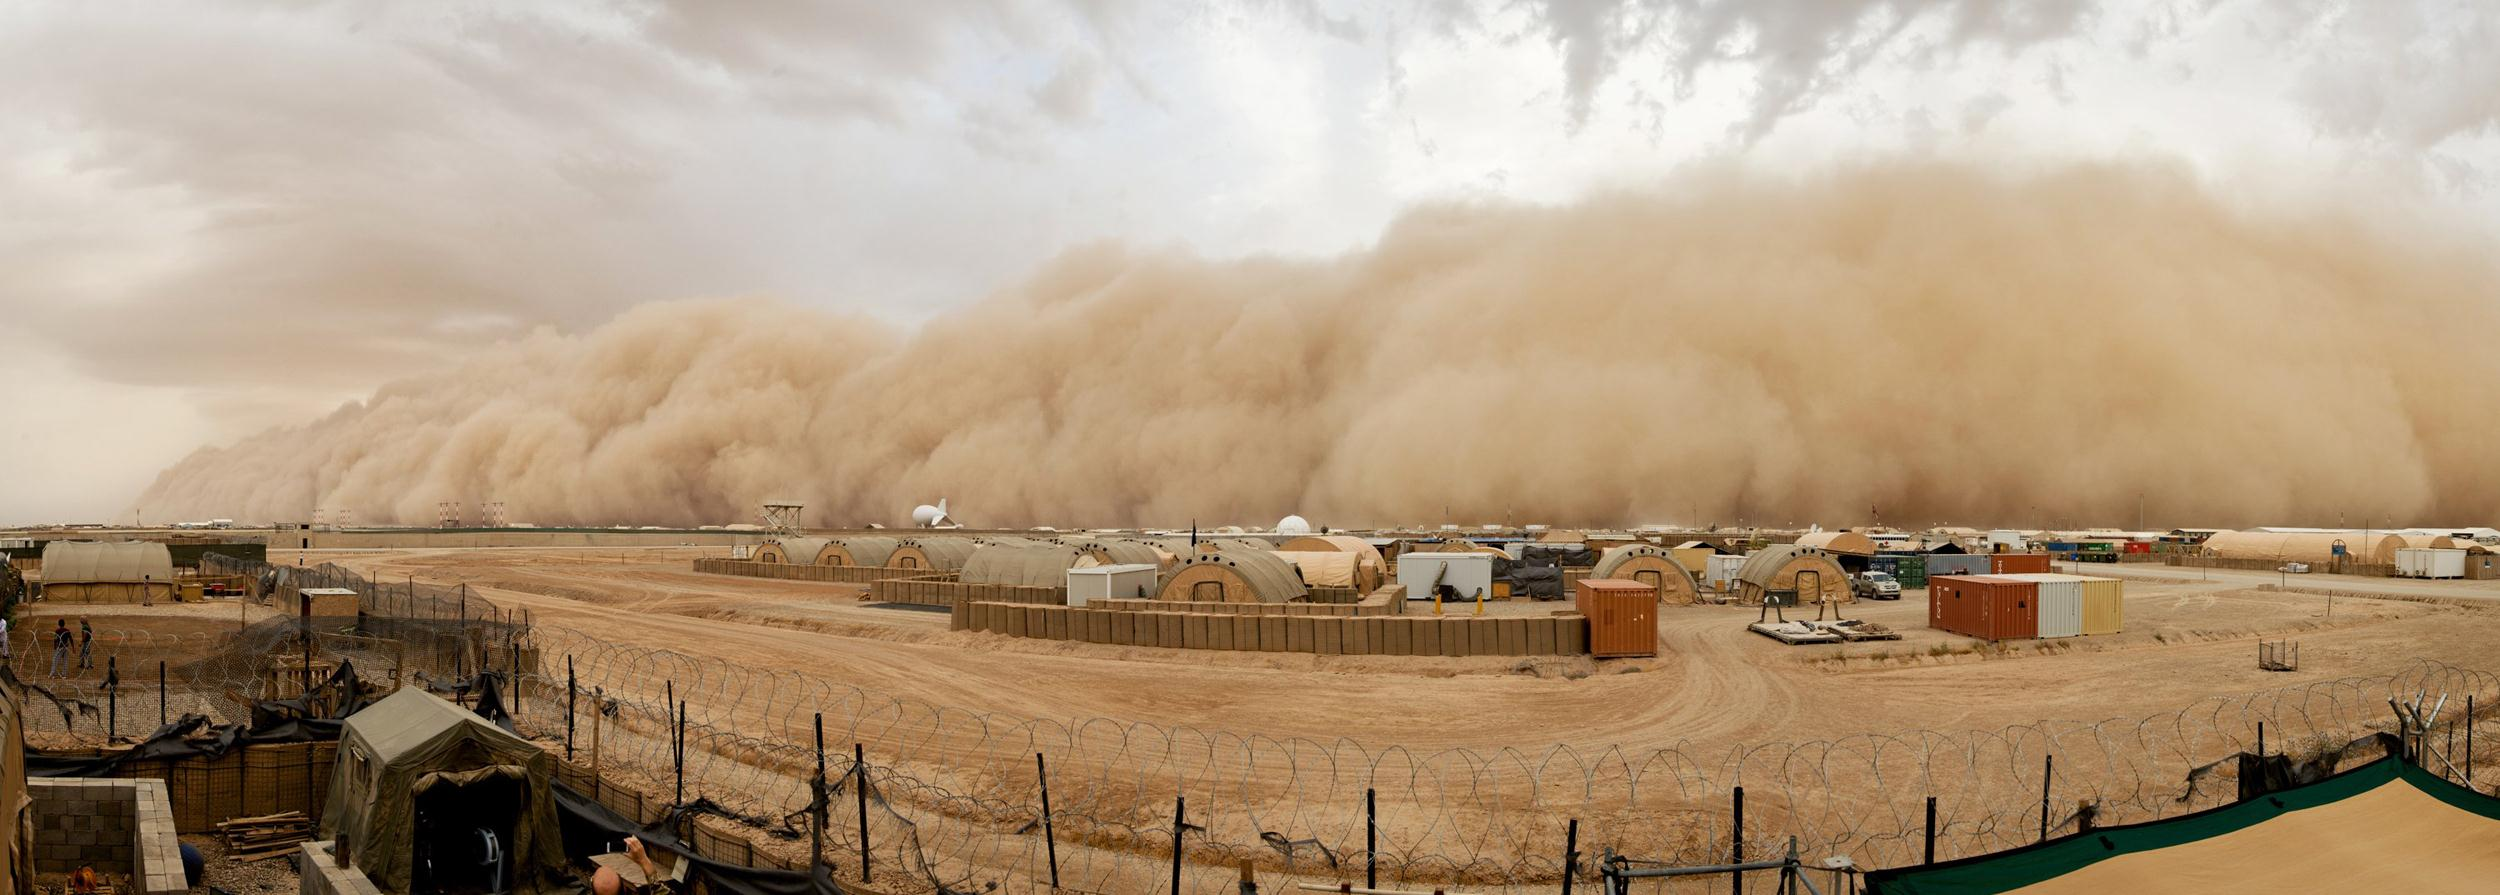 sandstorms weather wiz kids